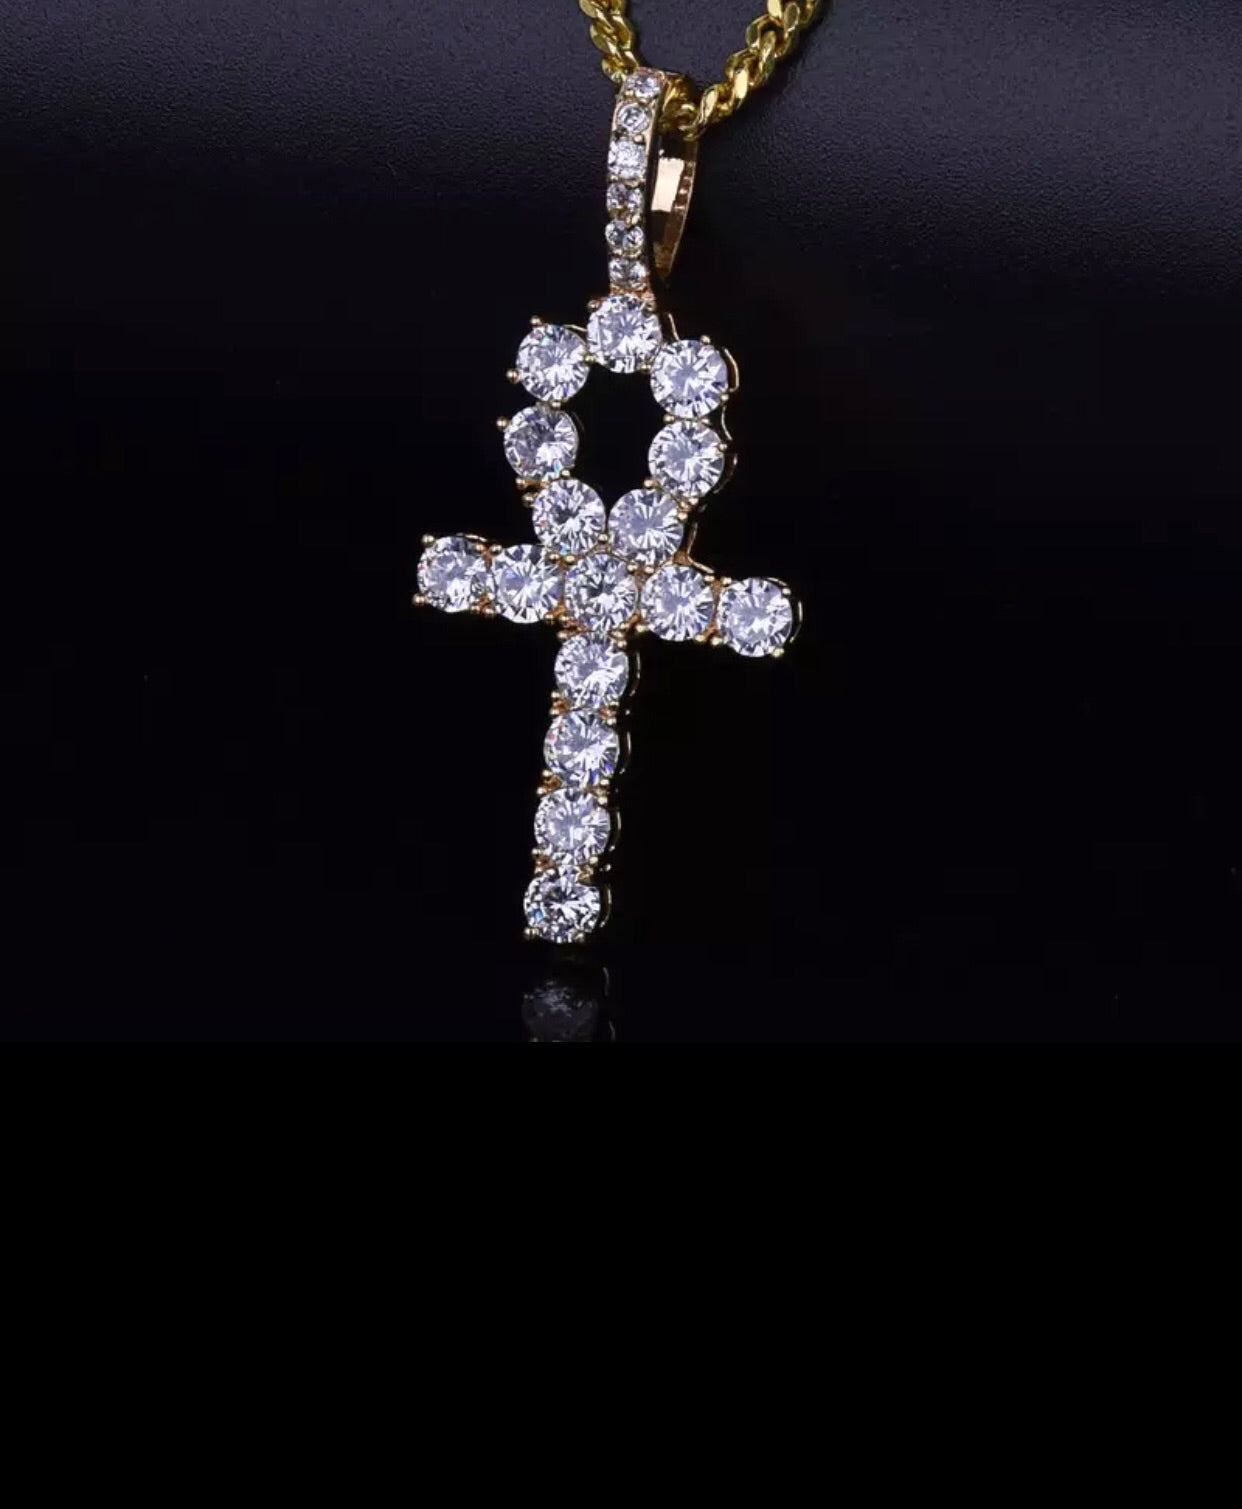 Good Life Ankh Necklace